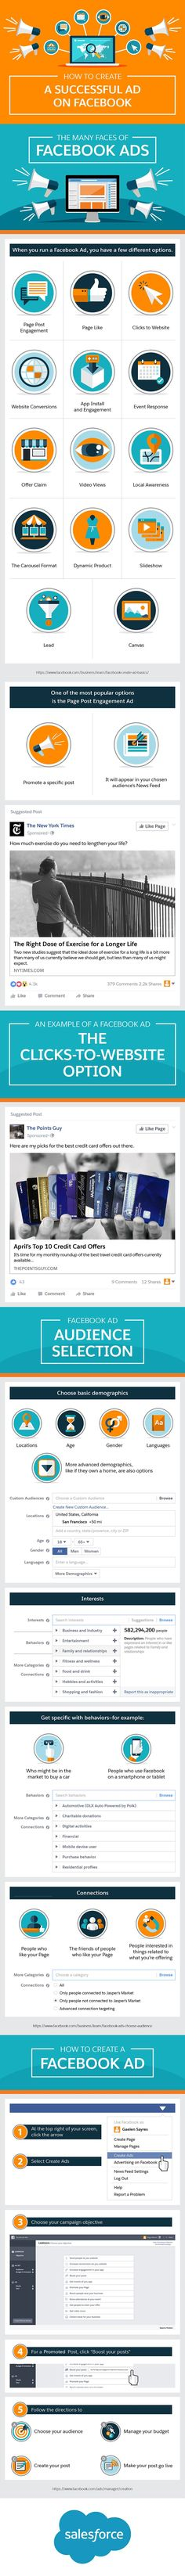 Social Media Marketing Tips: How to Create a Successful Ad on Facebook [INFOGRAPHIC]